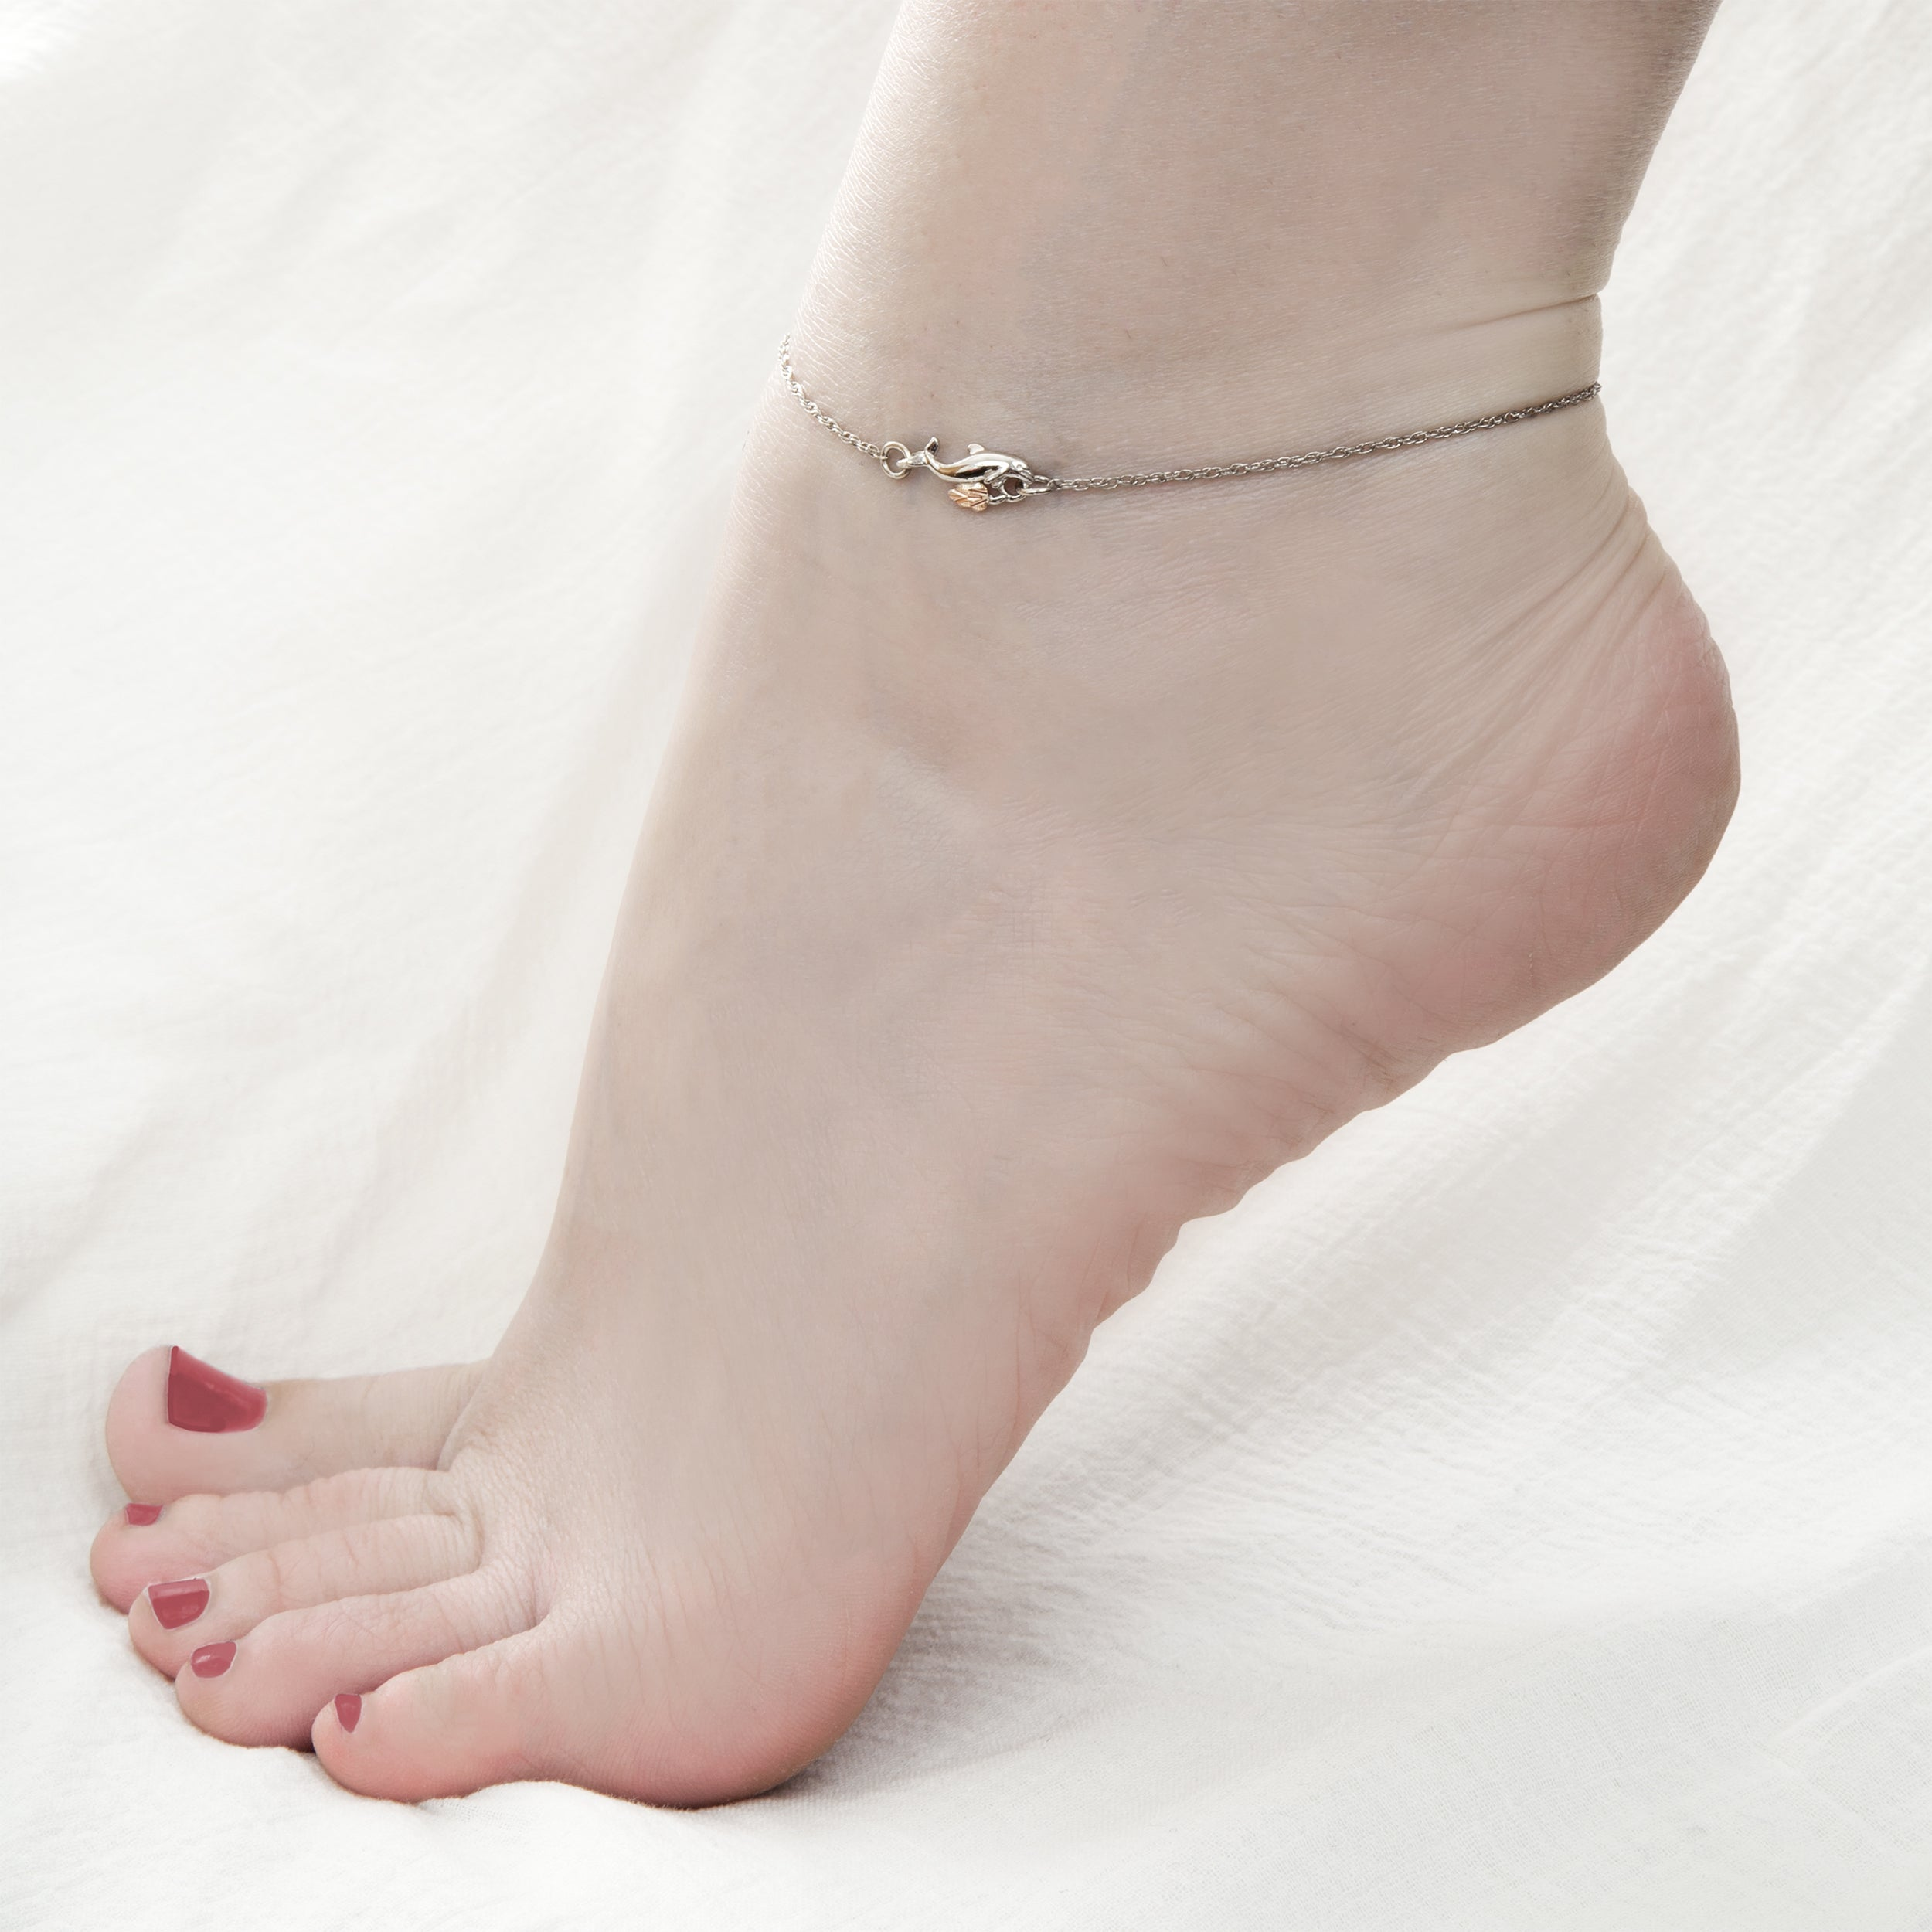 ankle anklet gold bracelet foot bracelets fill summer popular pin jewelry